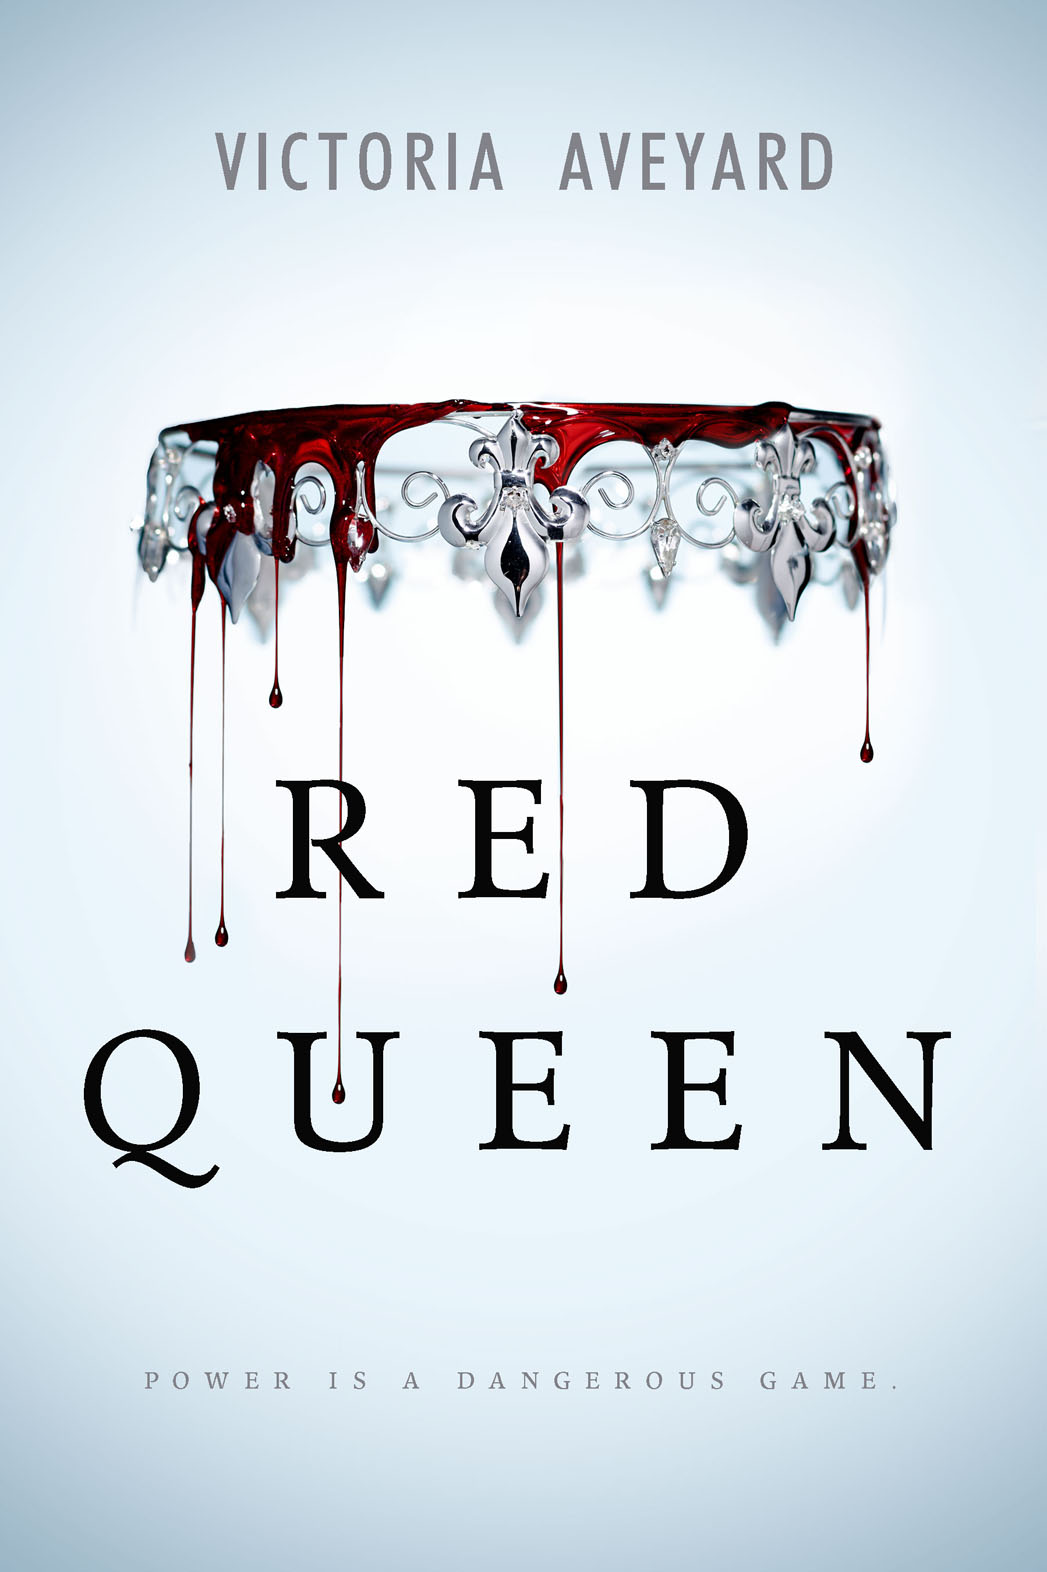 Red Queen Victoria Aveyard cover